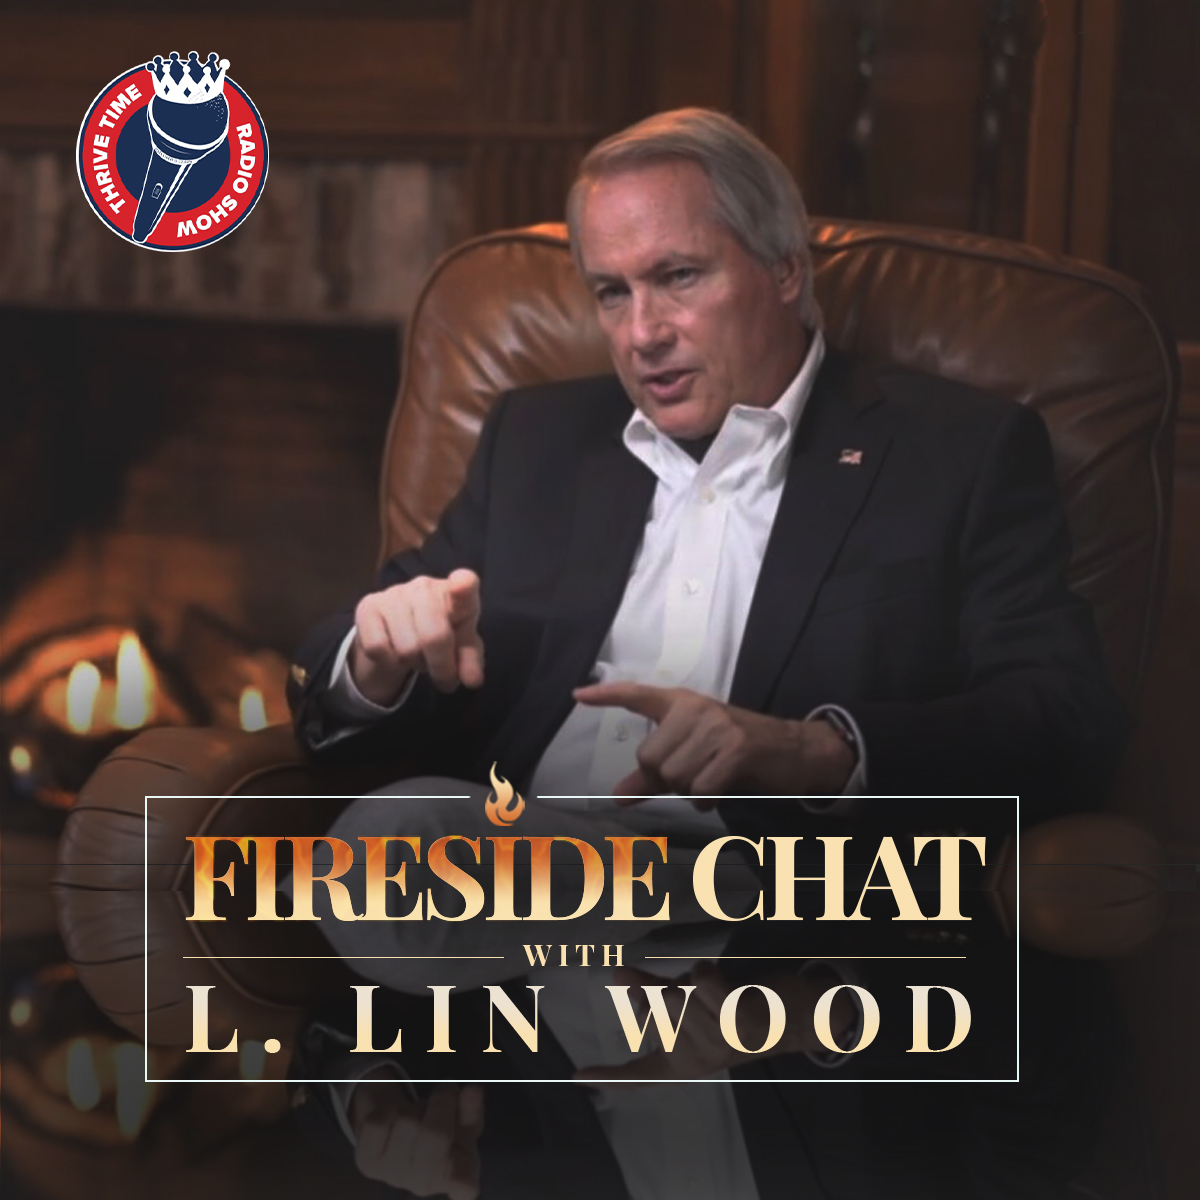 Lin Wood Fireside Chat | Is Jeffrey Epstein Still Alive?